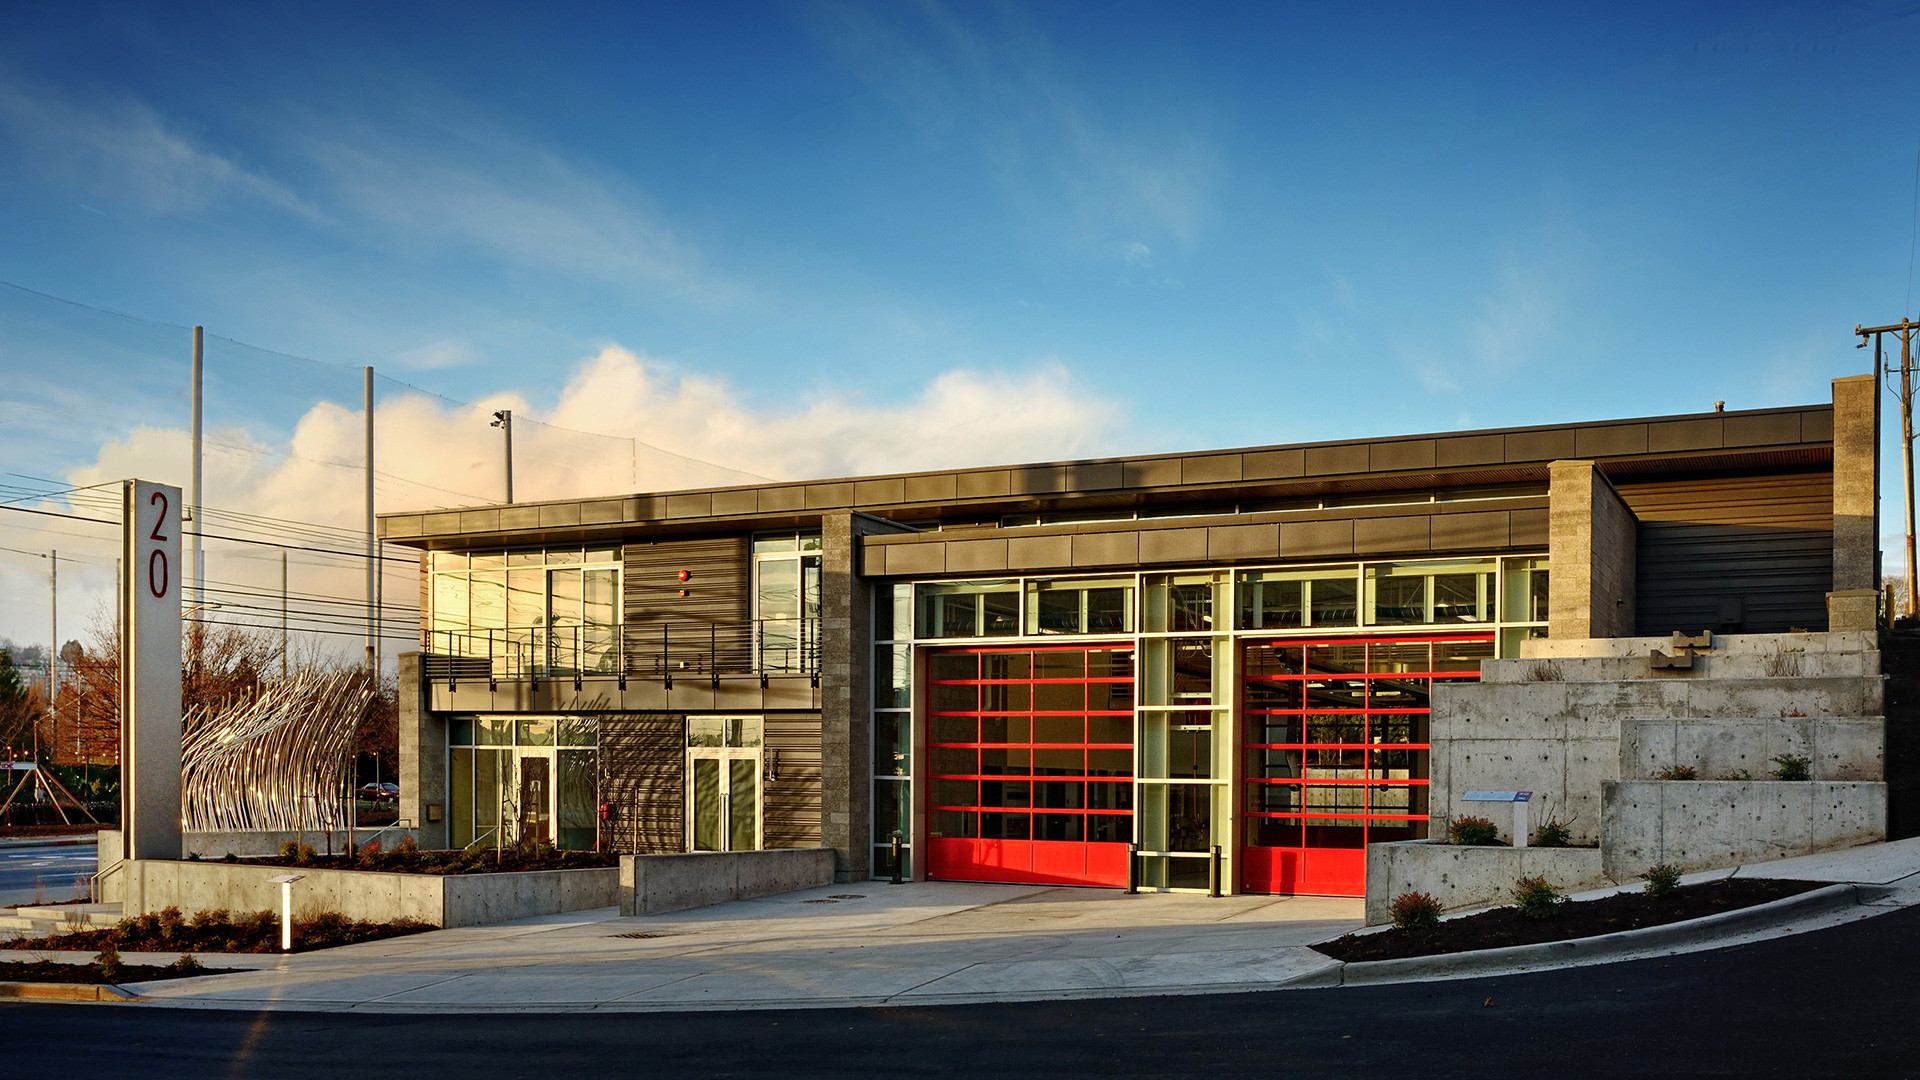 Charmant Fire Station 20